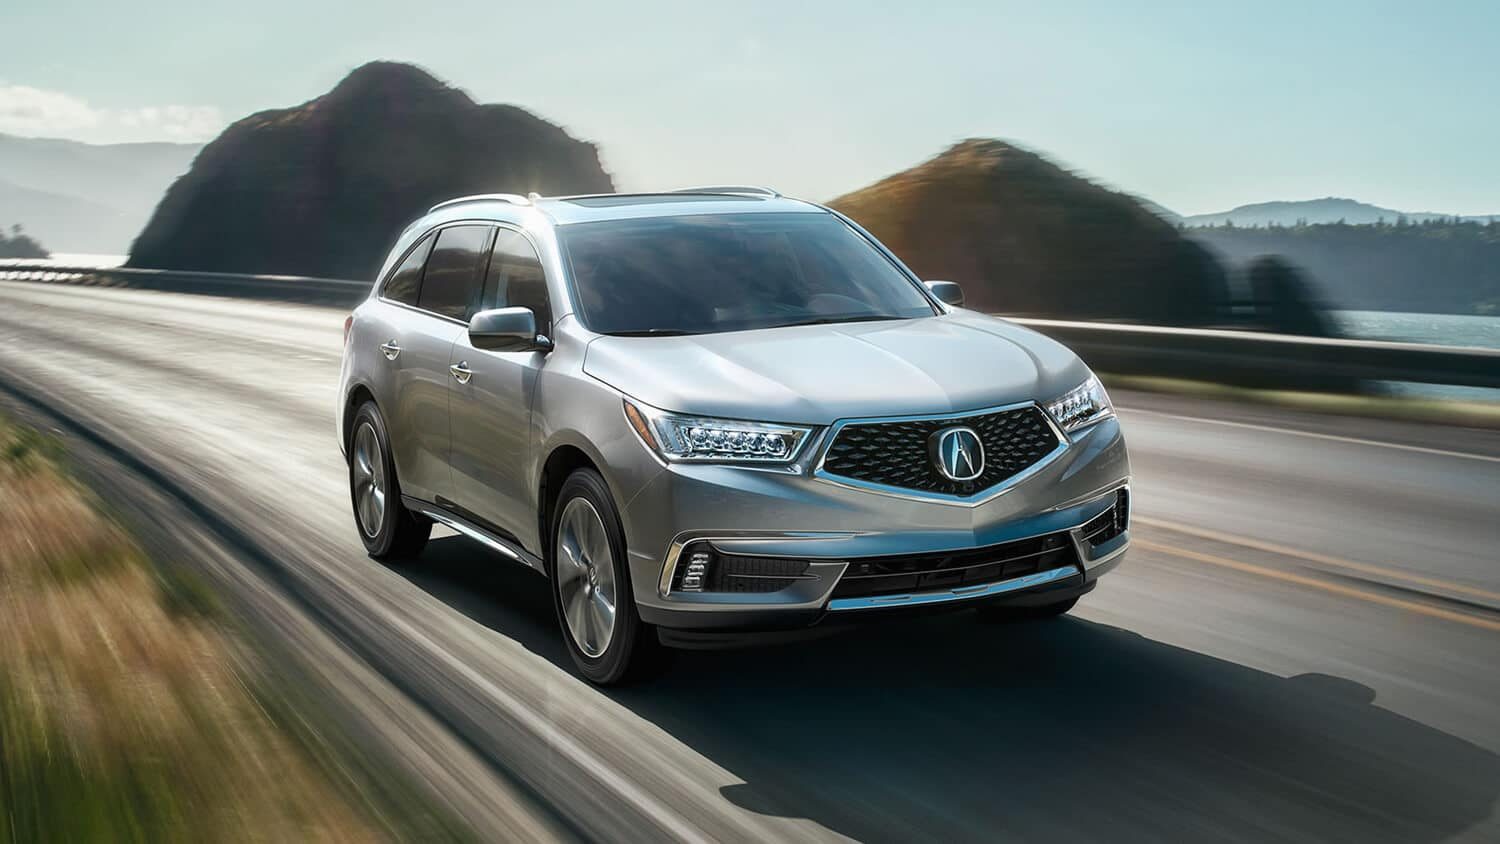 2018 Acura MDX Exterior Front Angle Passenger Side